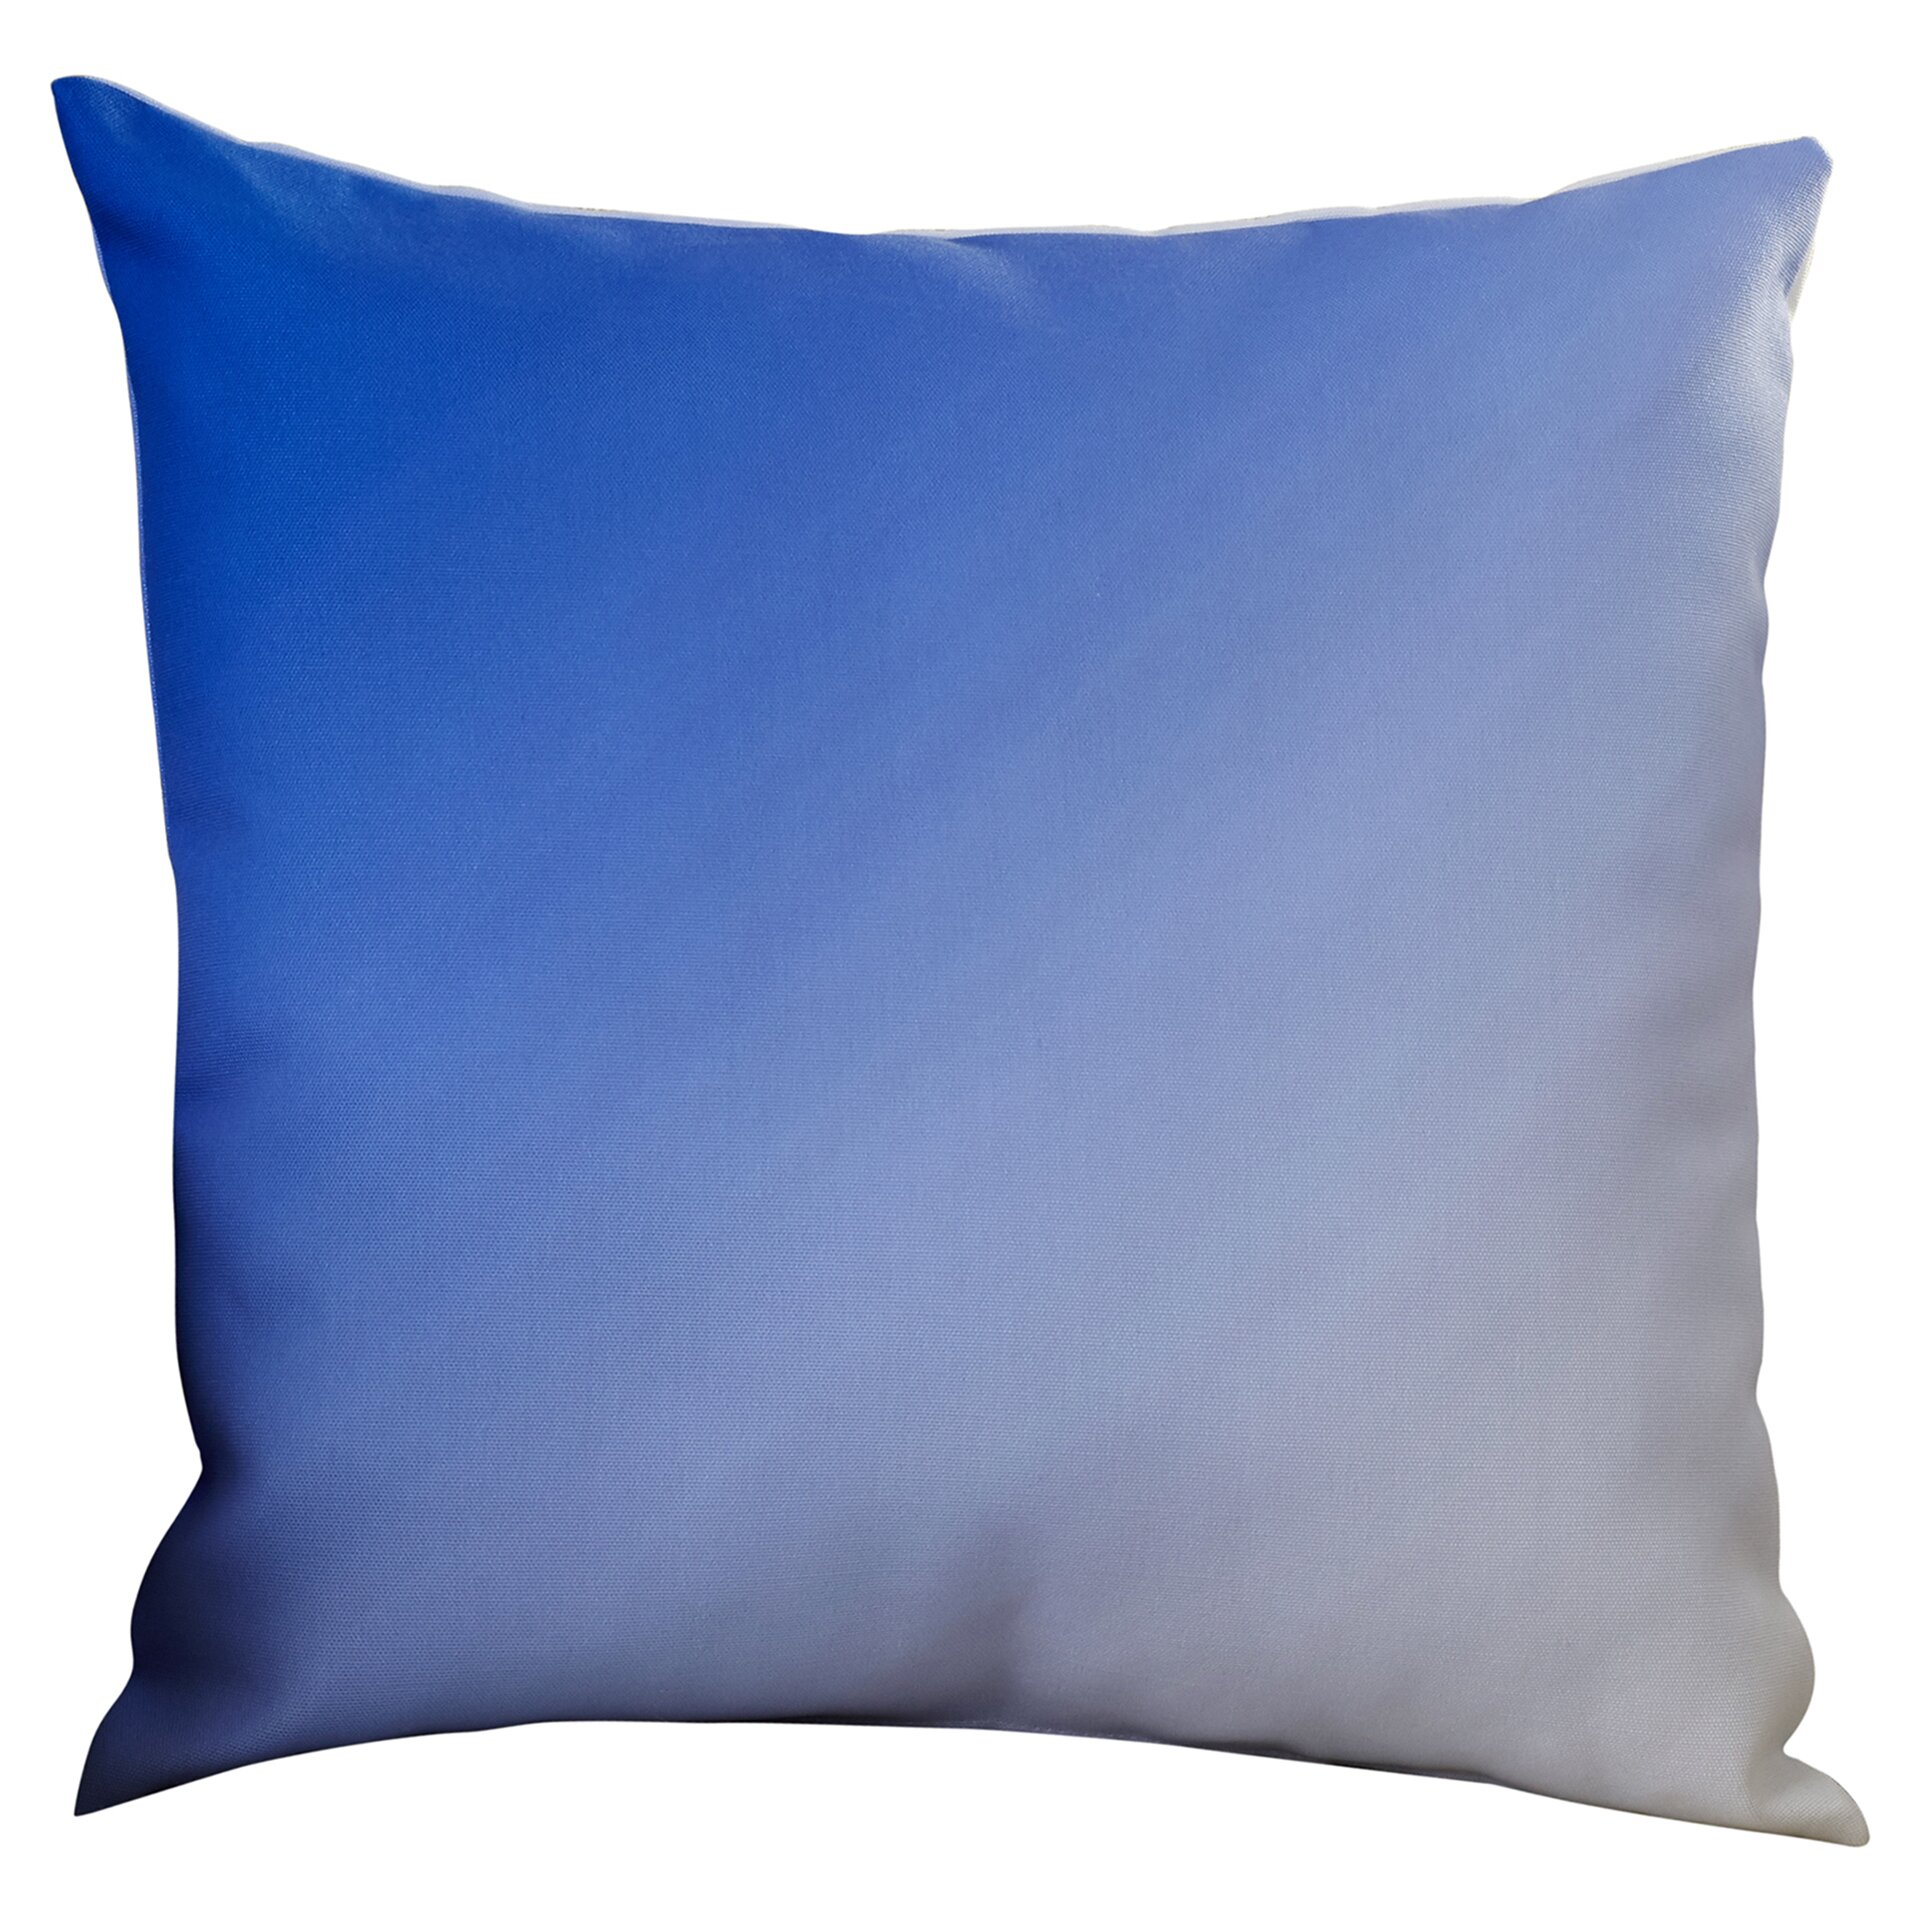 Down Throw Pillows For Couch : Zipcode Design Bonnie Down Blend Throw Pillow & Reviews Wayfair.ca